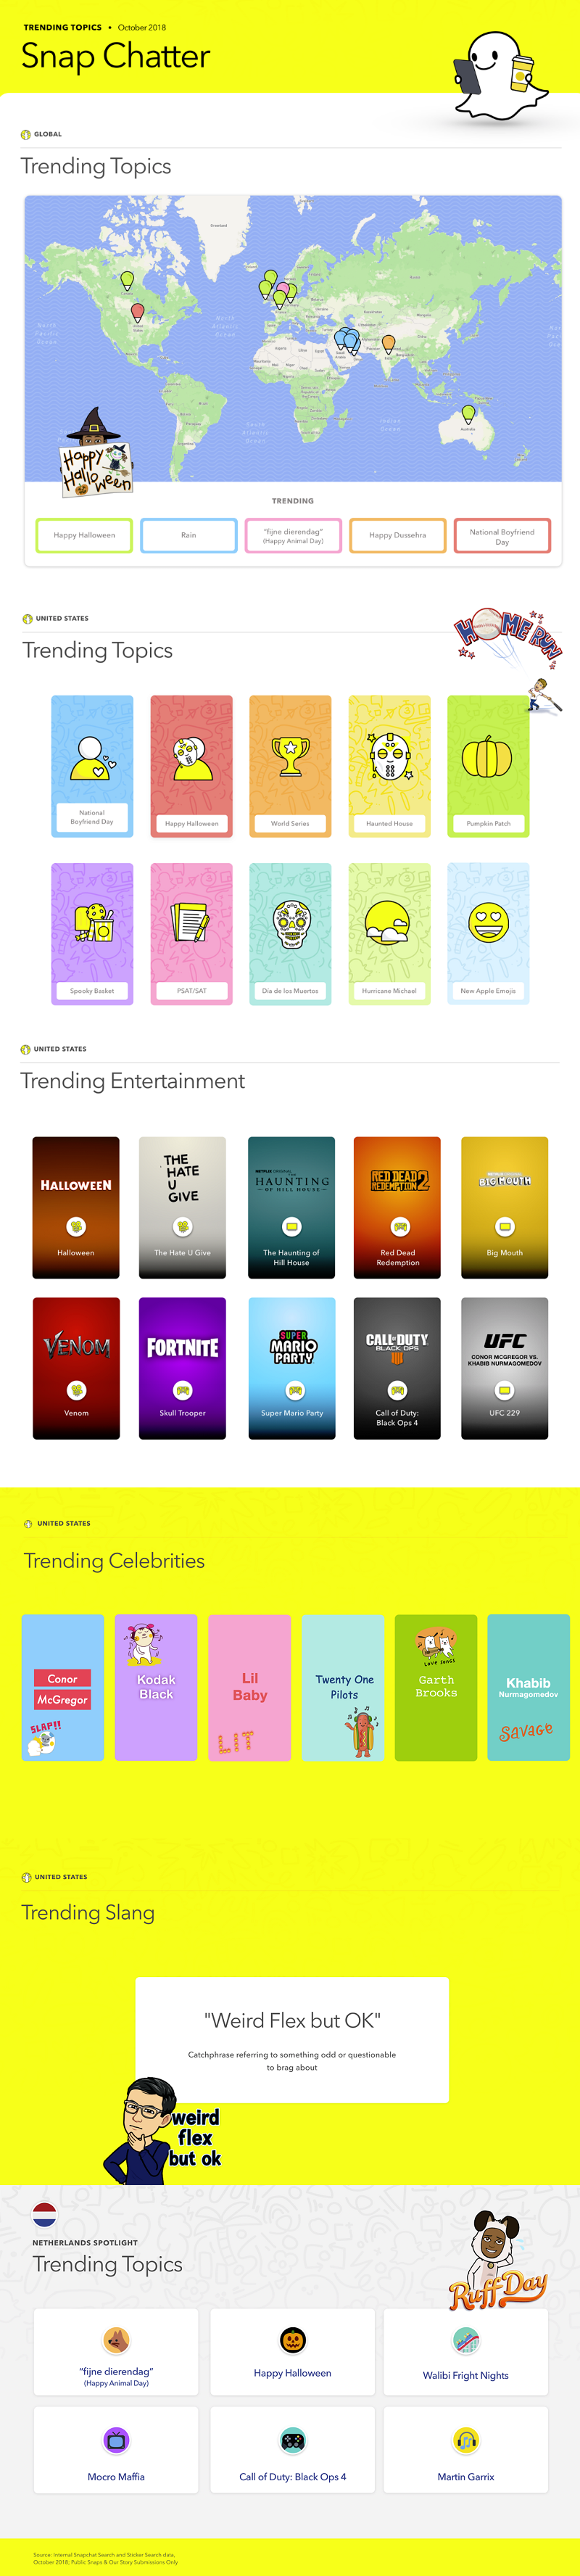 Snapchat Releases Latest Update of Trending Topics on the Platform [Infographic]